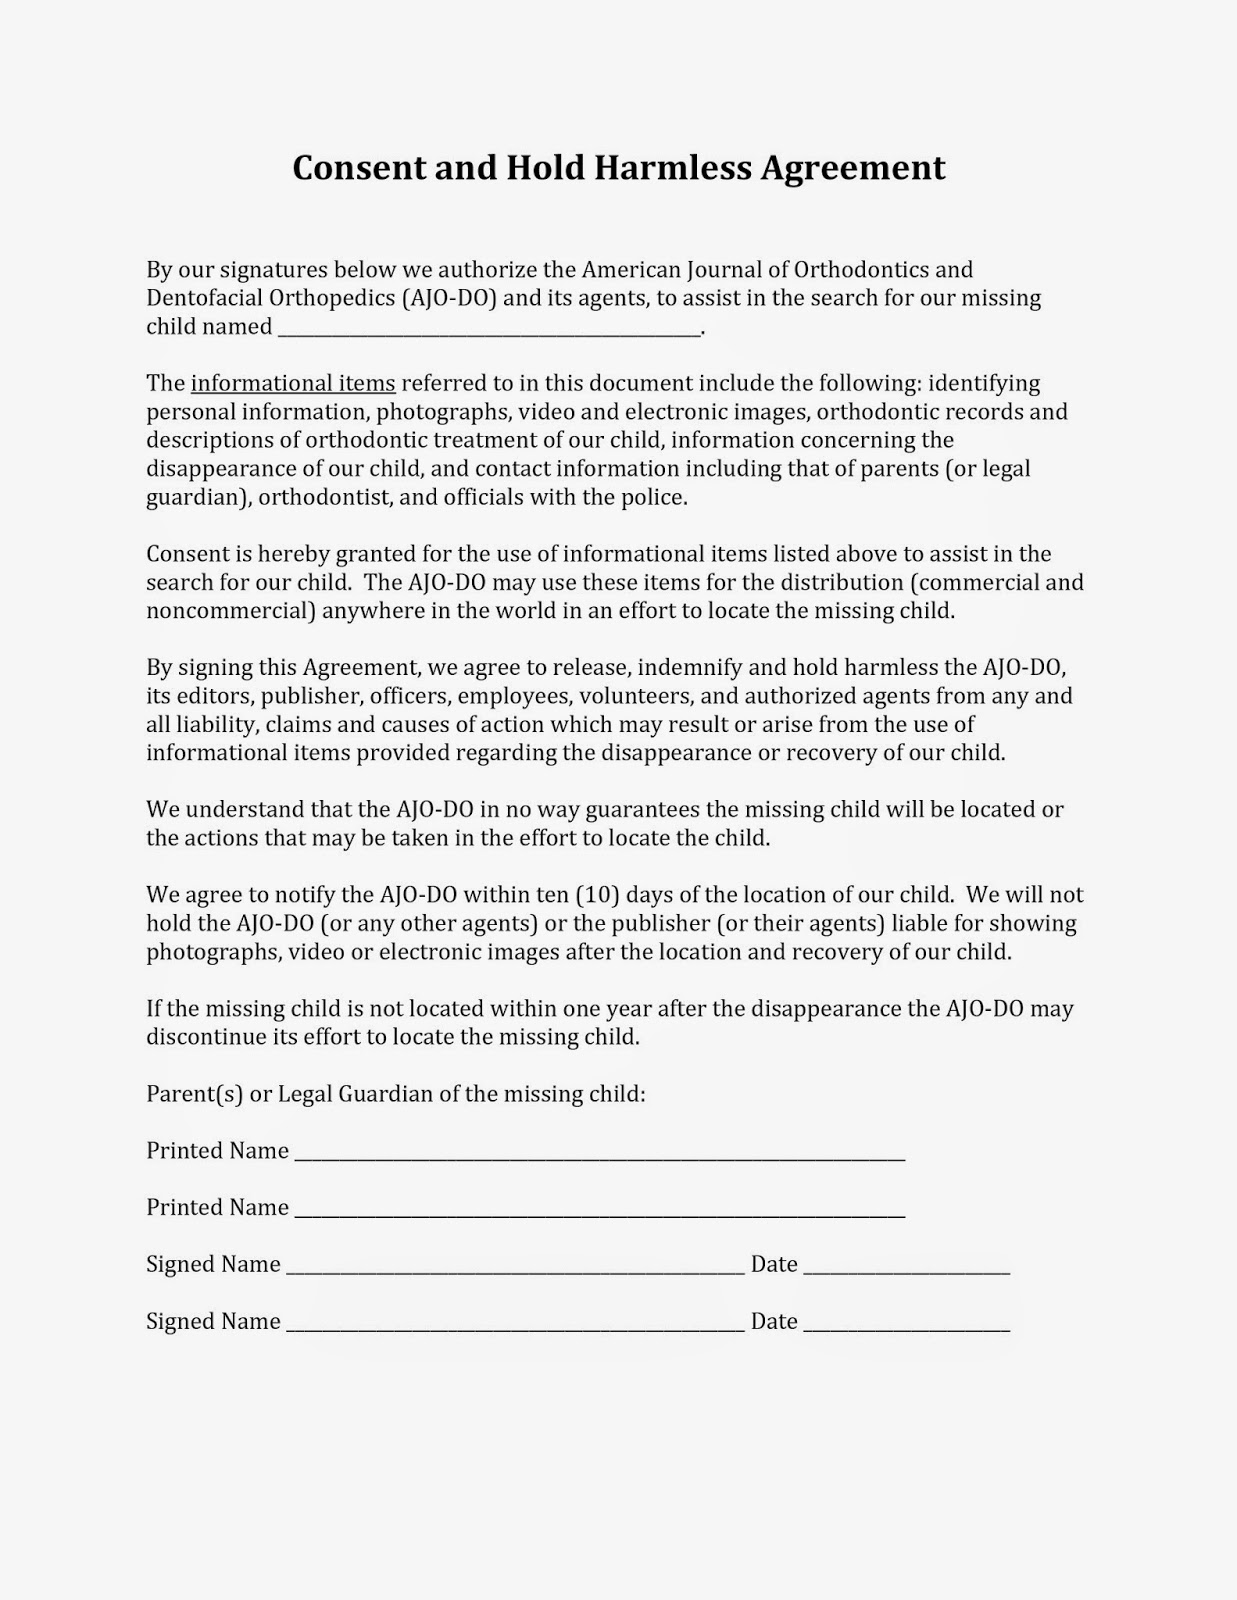 AJODO Blog Consent Form – Consent Form